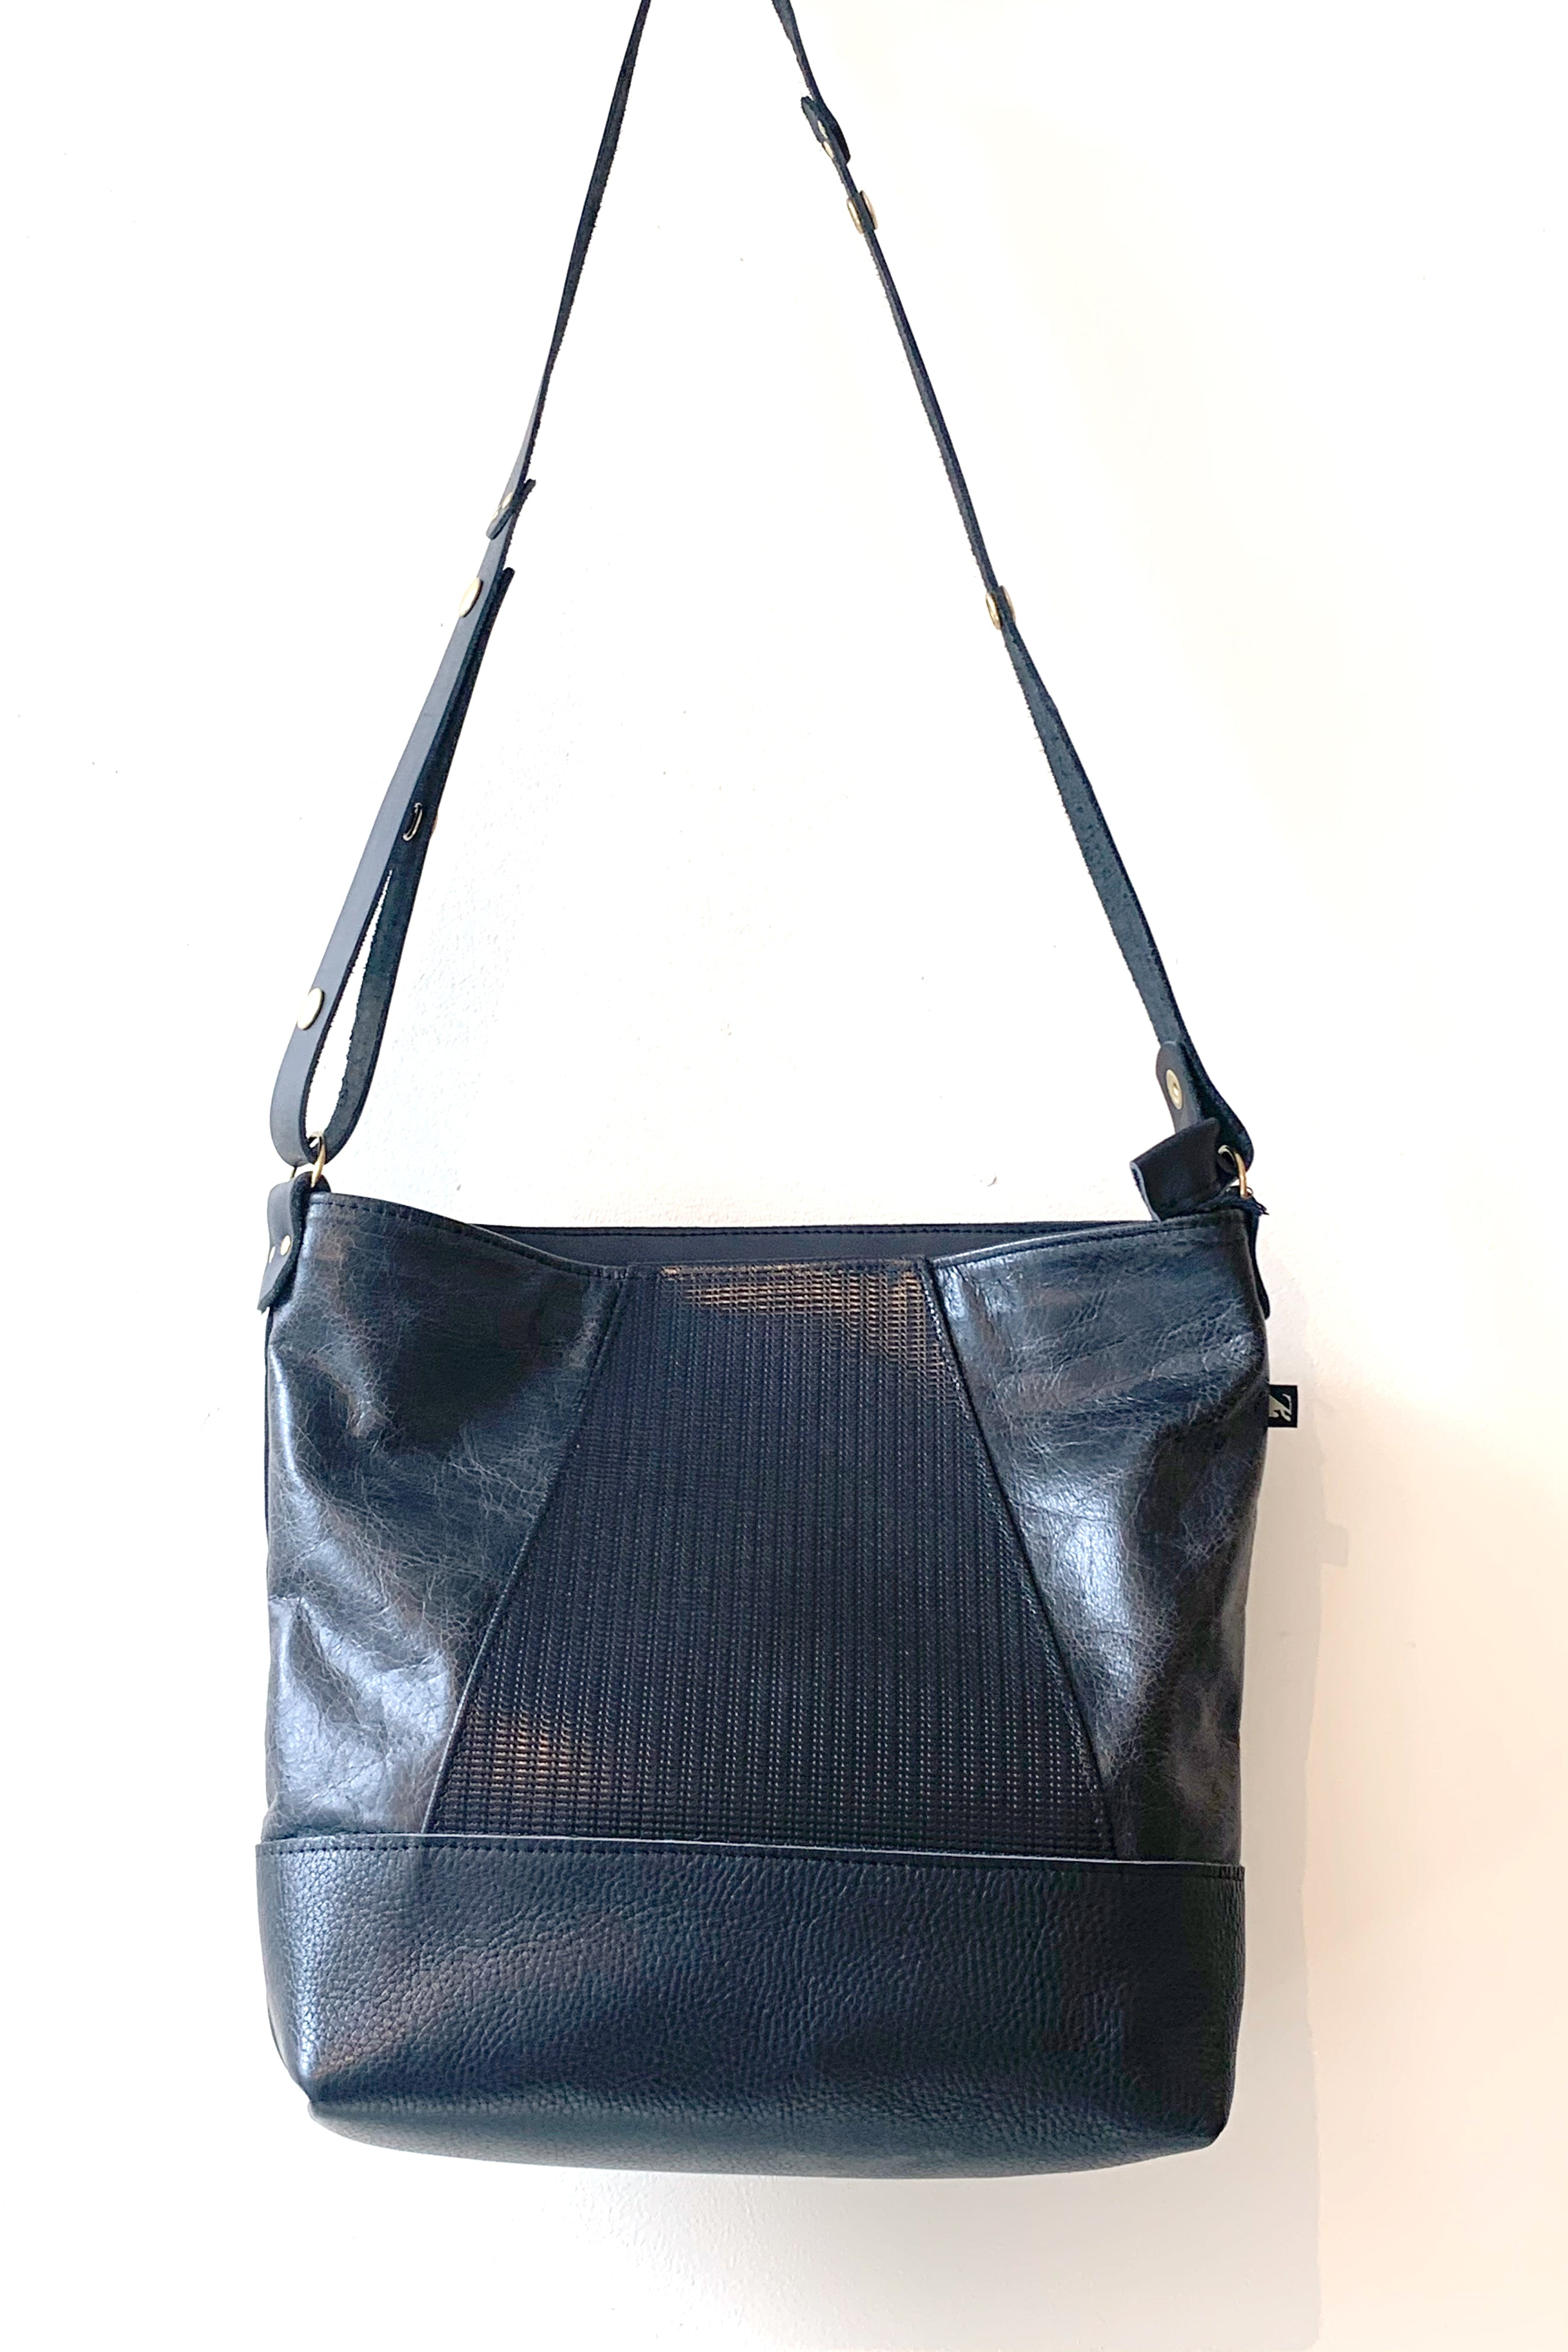 Yupik - Recycled Leather Shoulder Bag